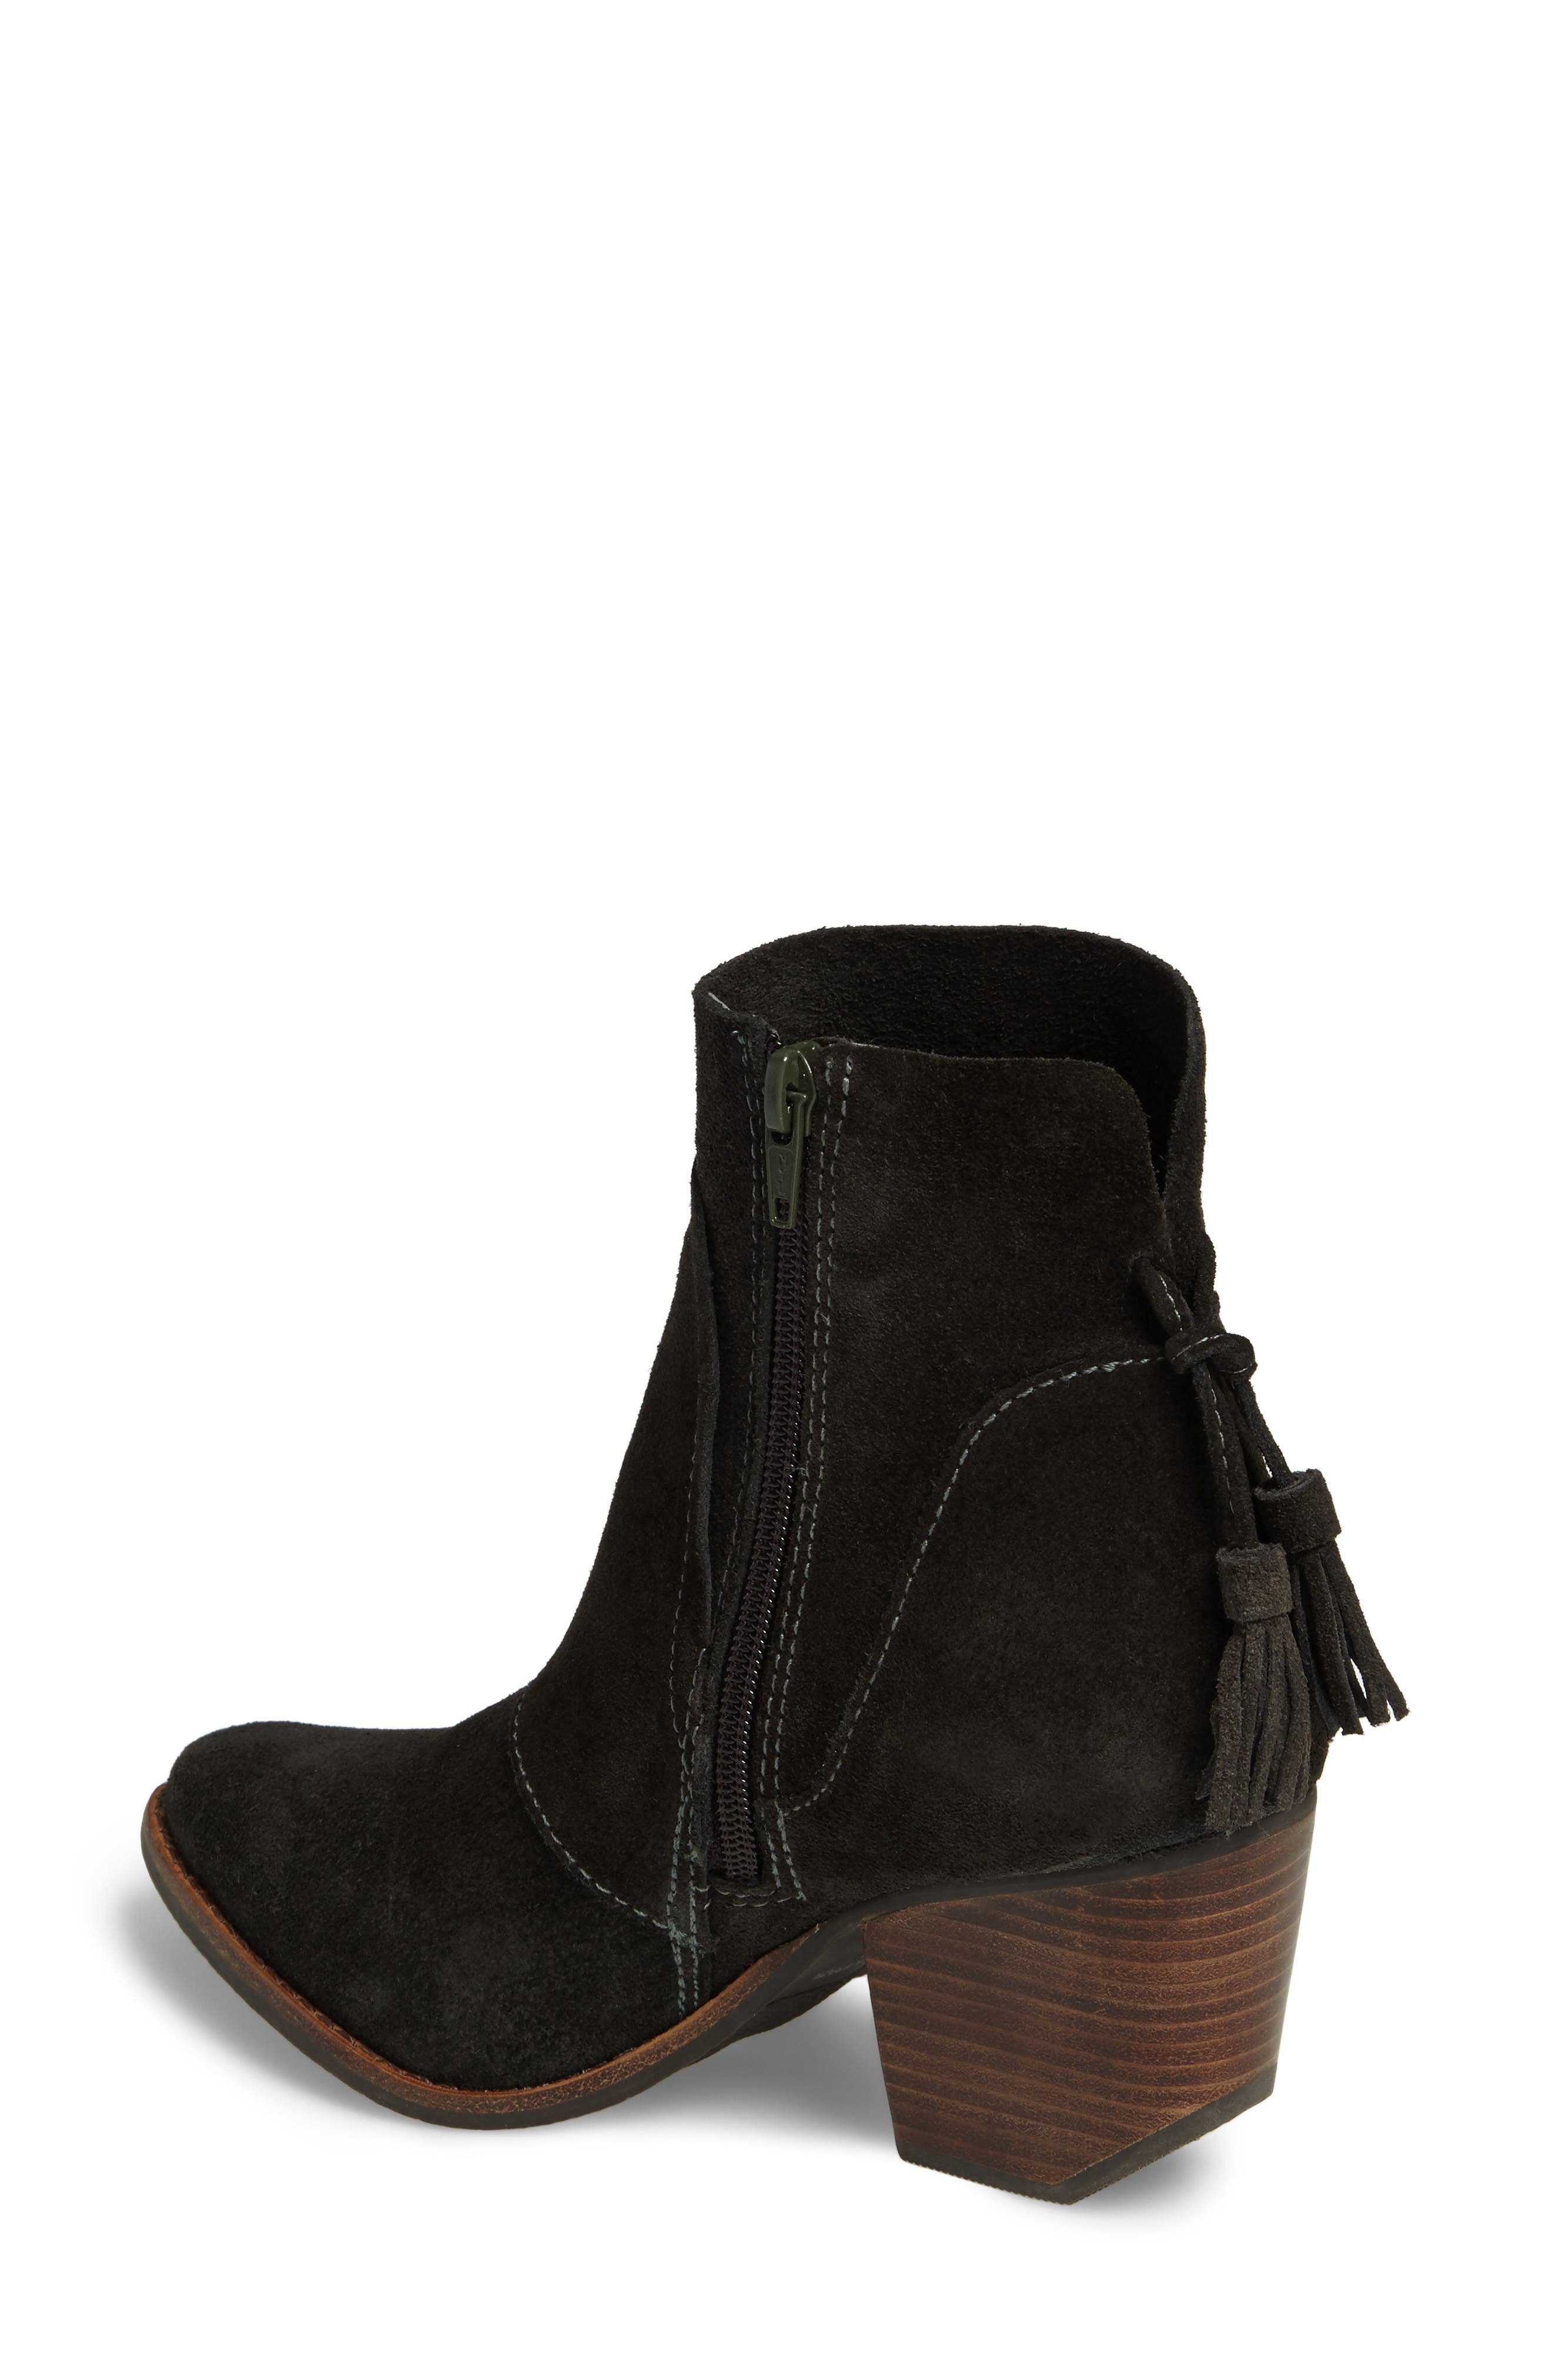 Laney Notched Heel Bootie,                             Alternate thumbnail 8, color,